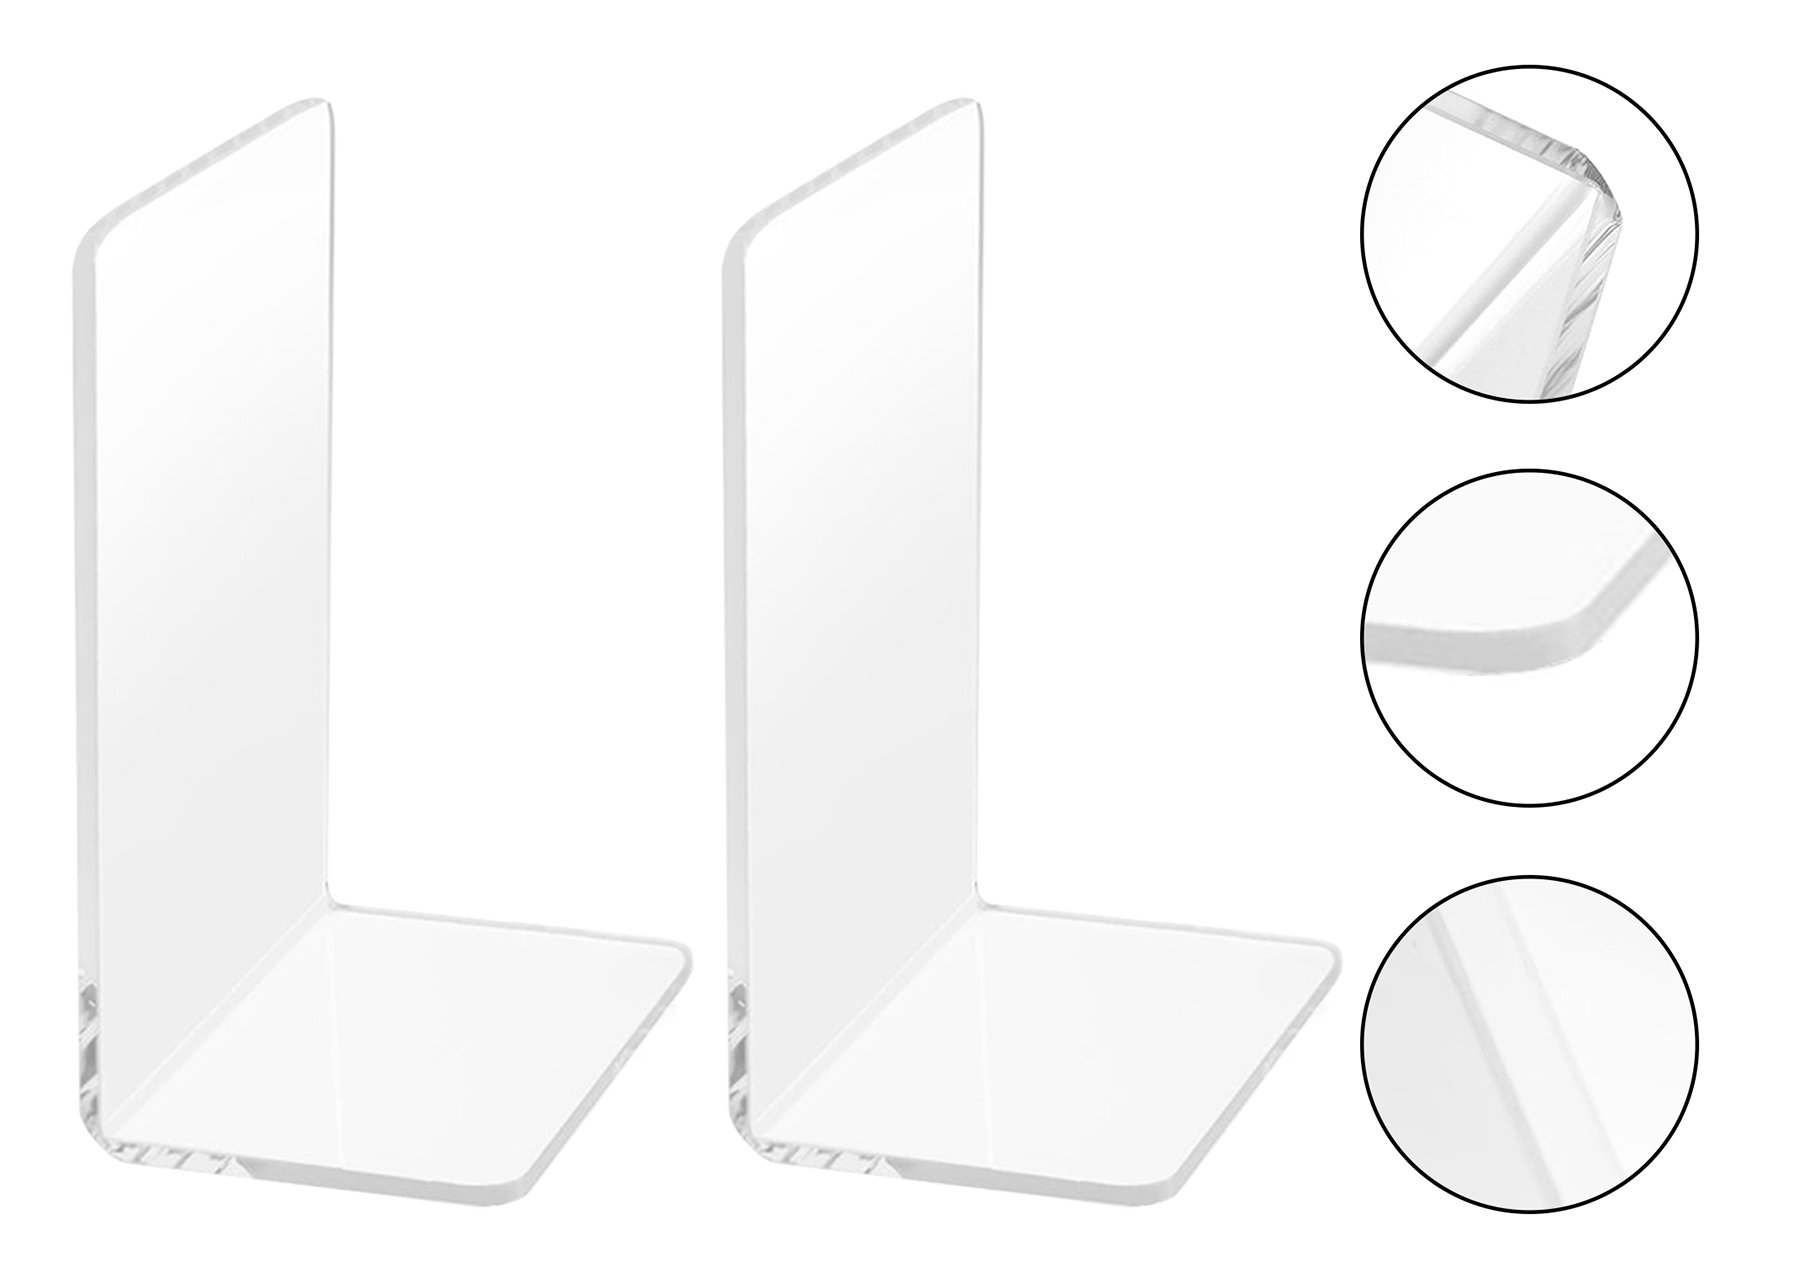 1 Pair/2 Pieces Plastic Acrylic Bookends, Non-Slip Clear Design Bookends for Books, Movies, DVDs, Magazines, Perfect for Bedroom Bookshelf Library School Office, Transparent, 7.3 x4.8inch by Frontoper